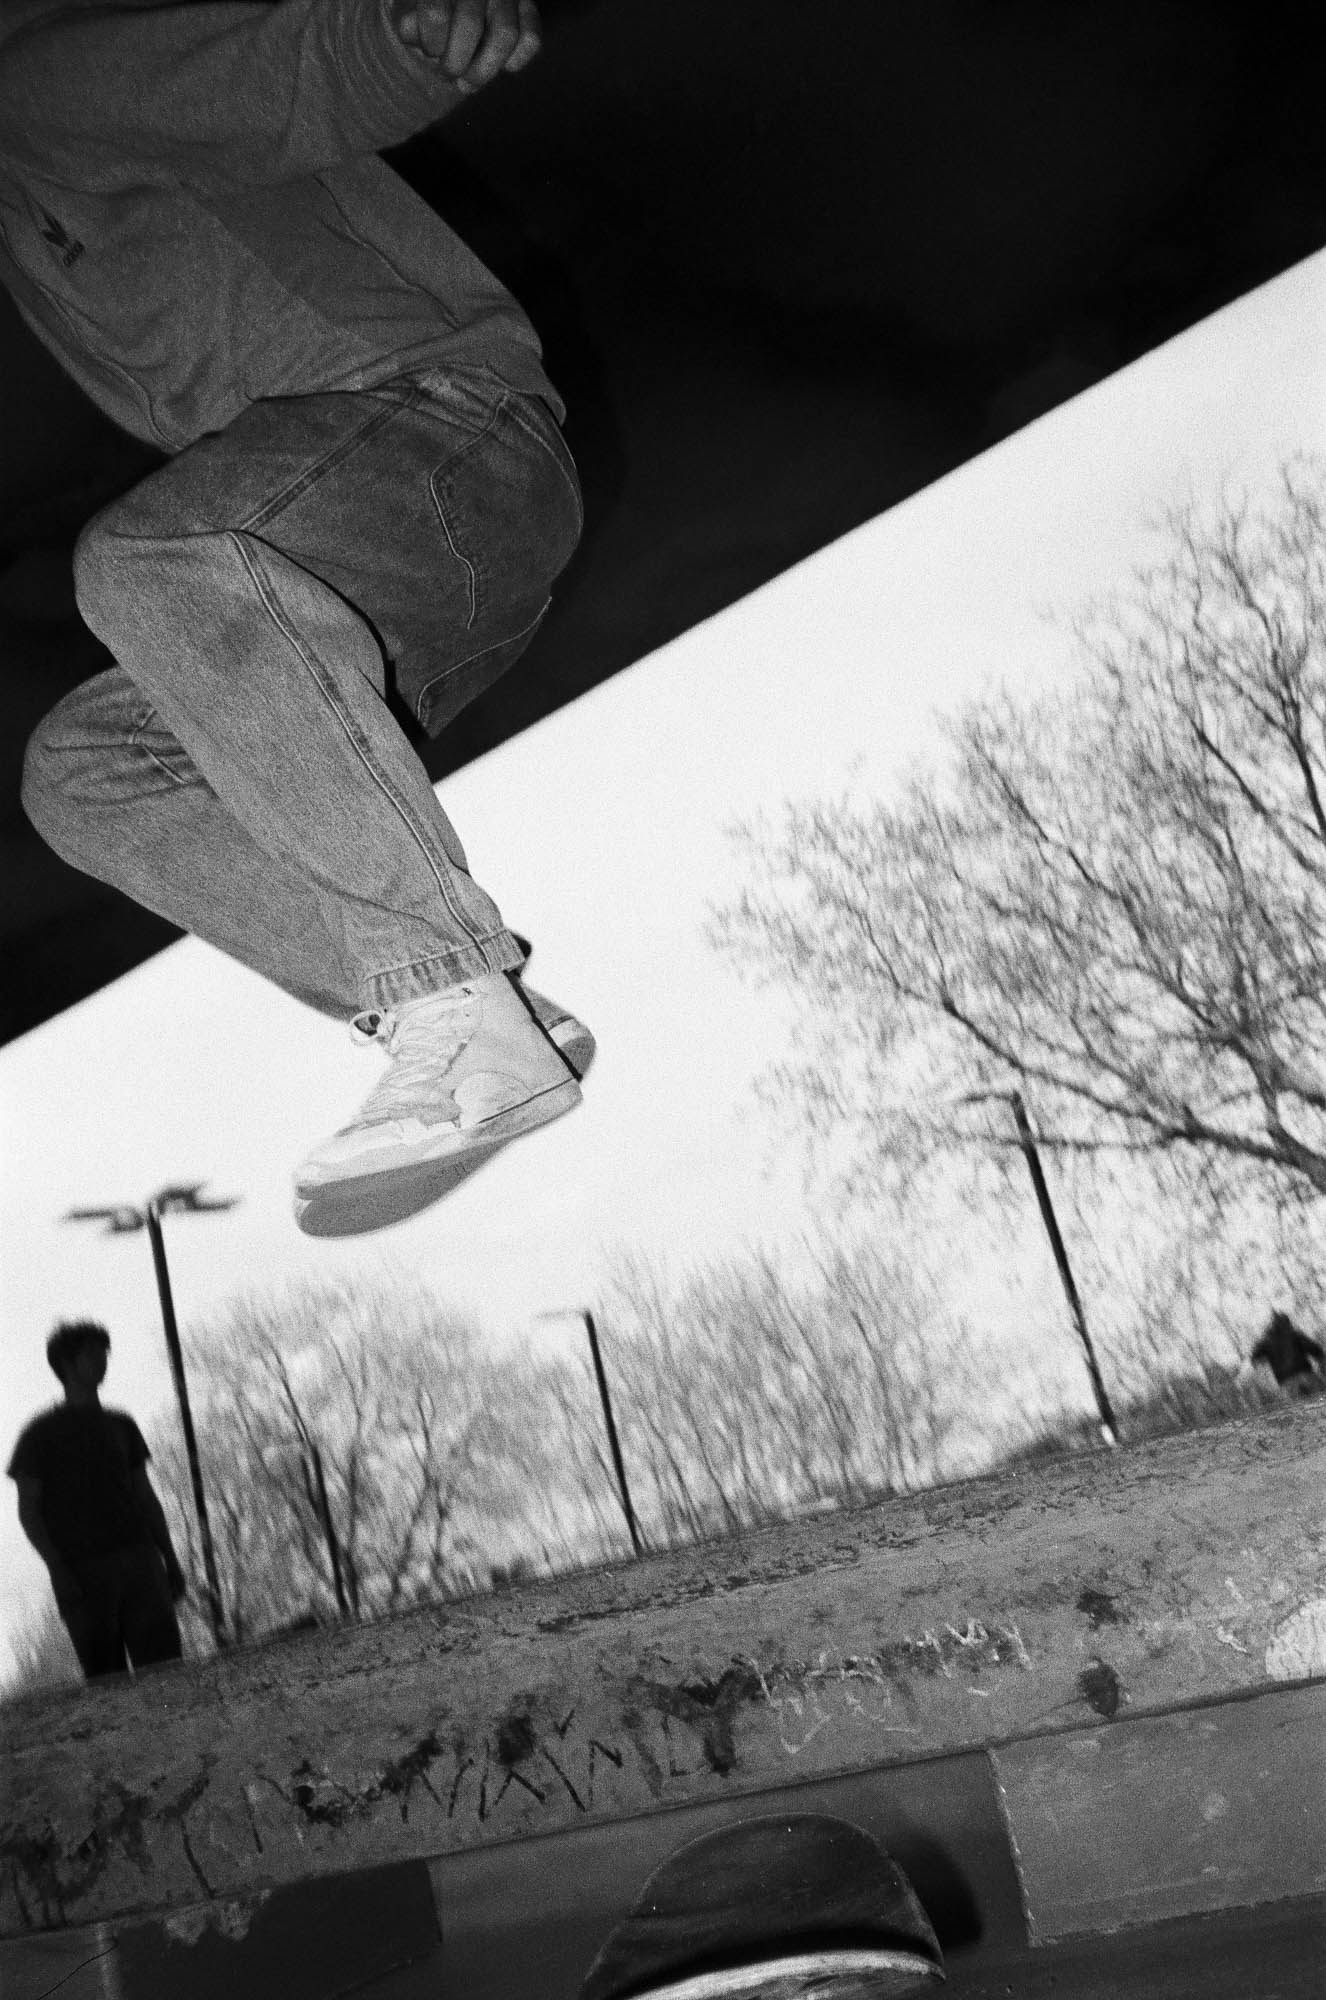 MONTREAL - SKATE SESSION - FILM PHOTOGRAPHY - QUENTIN ANDRUP